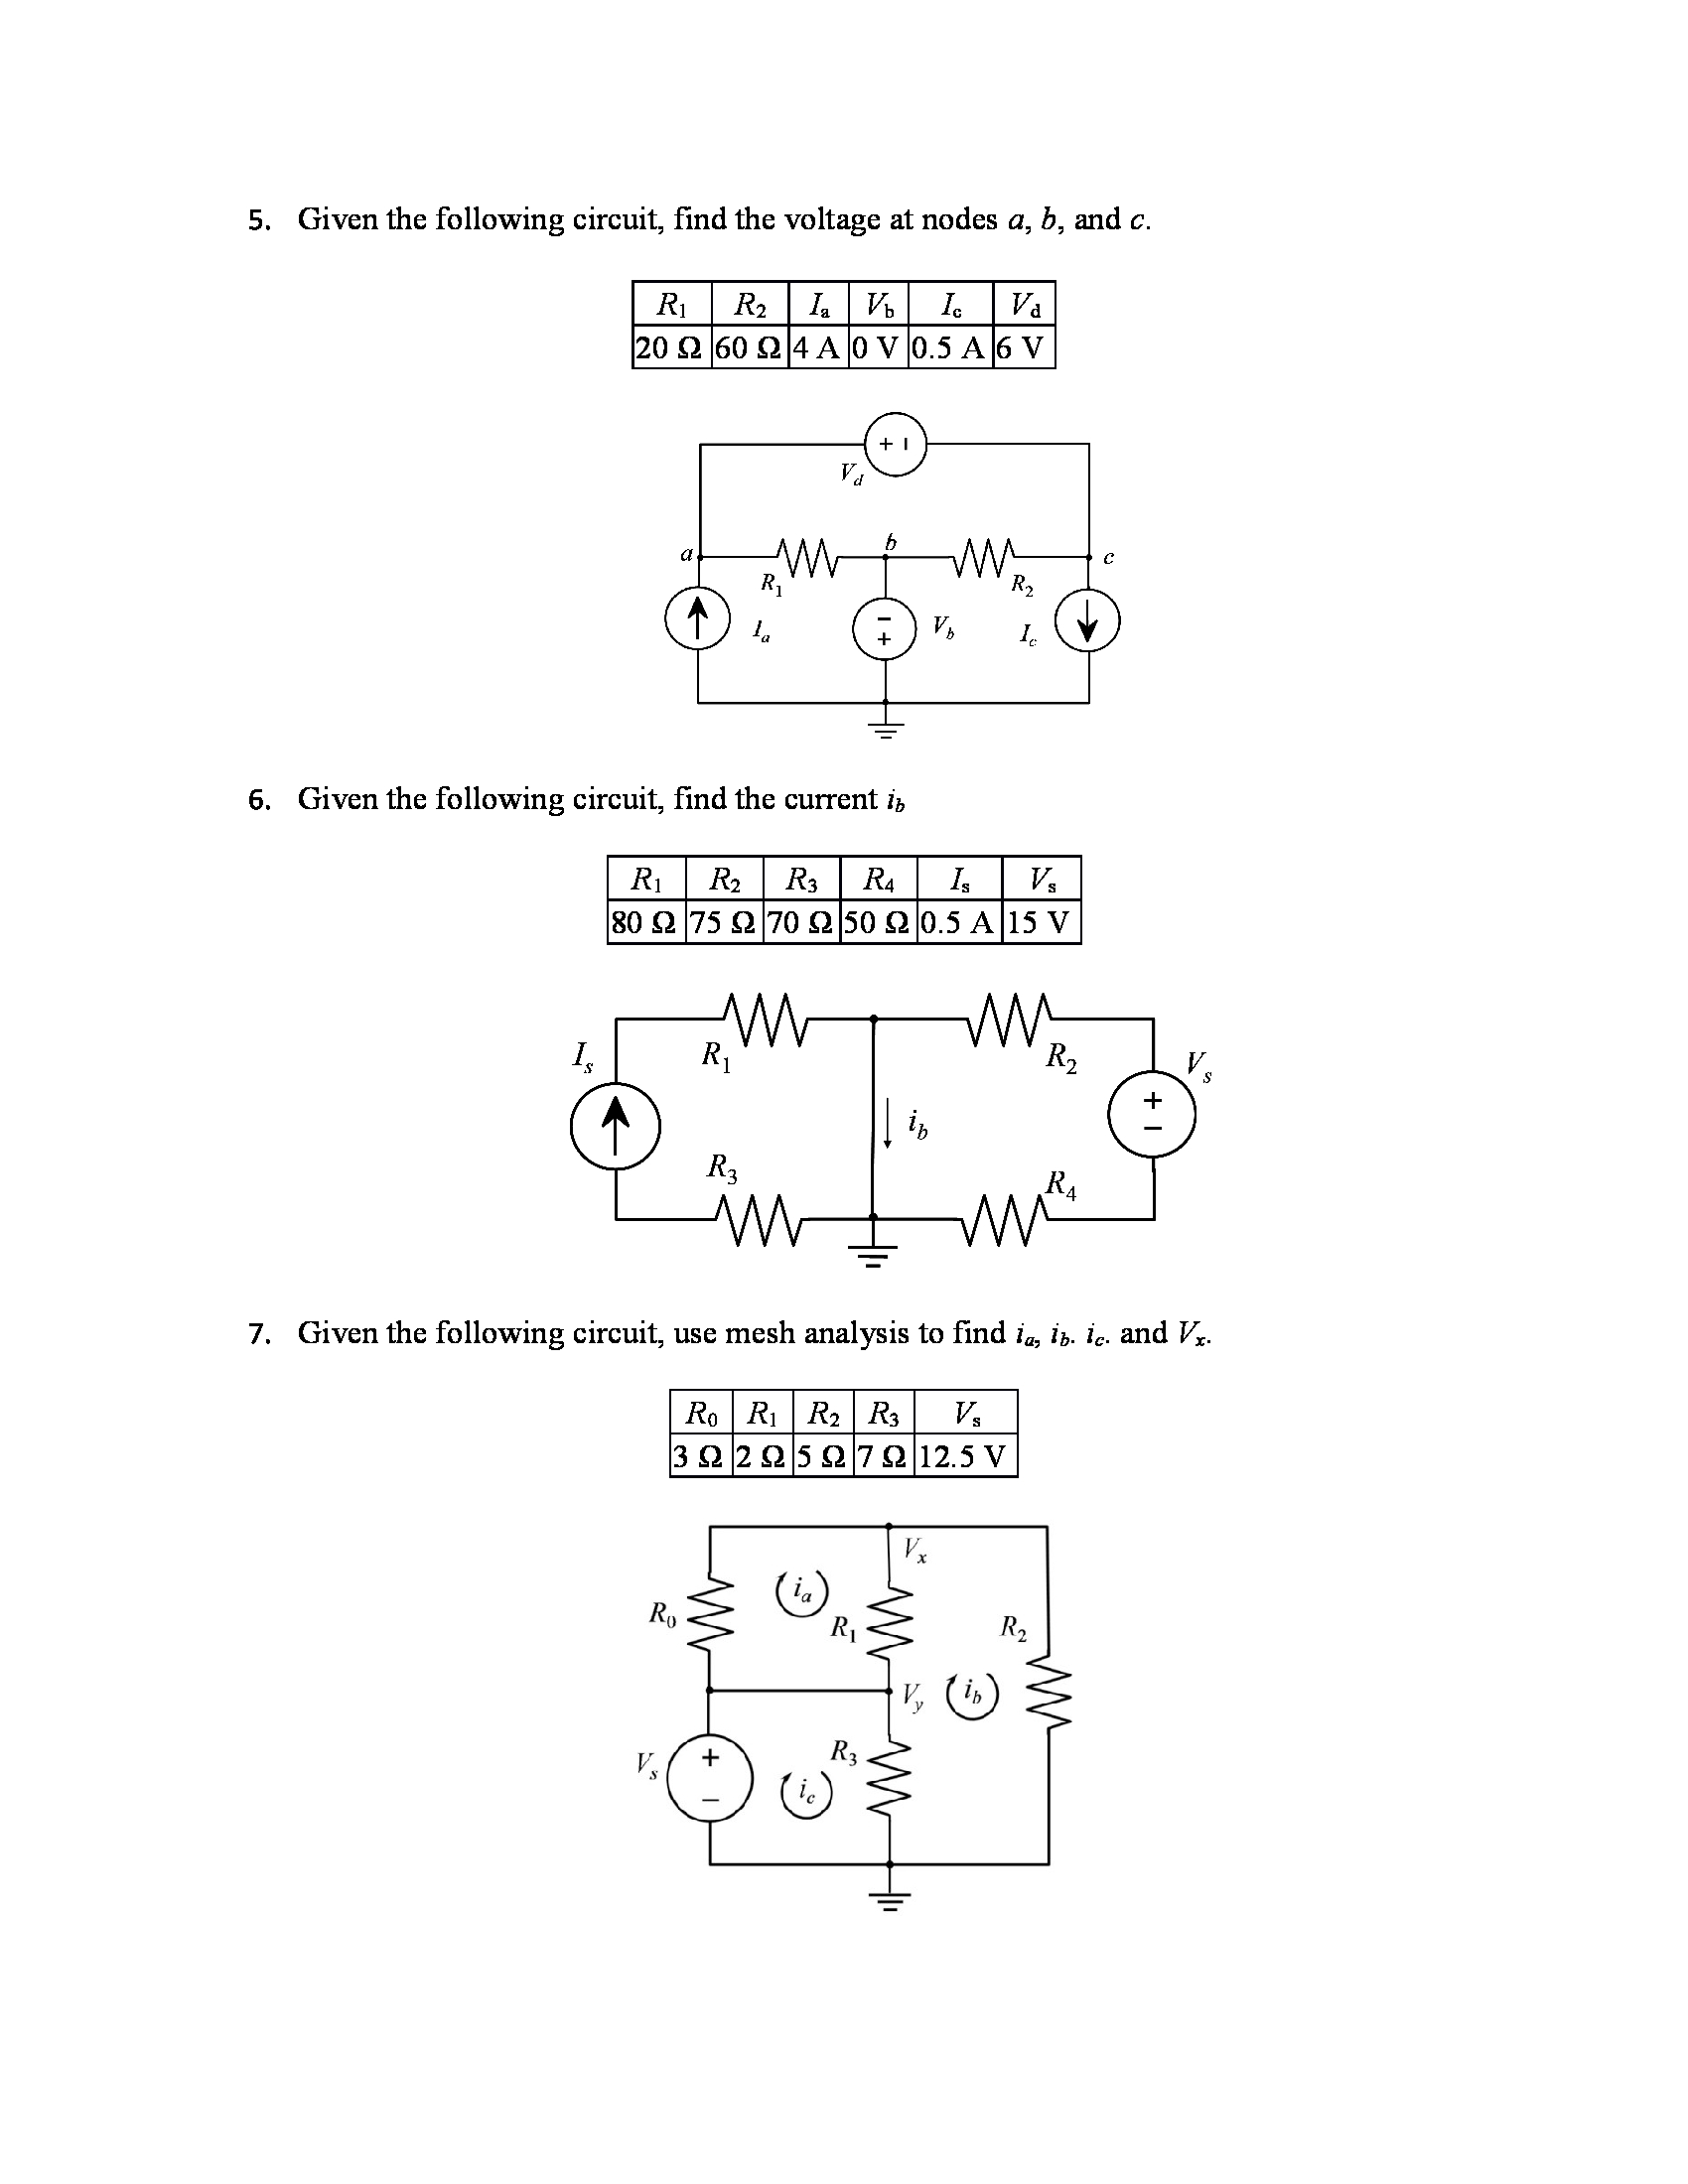 Given the following circuit, find the voltage at n